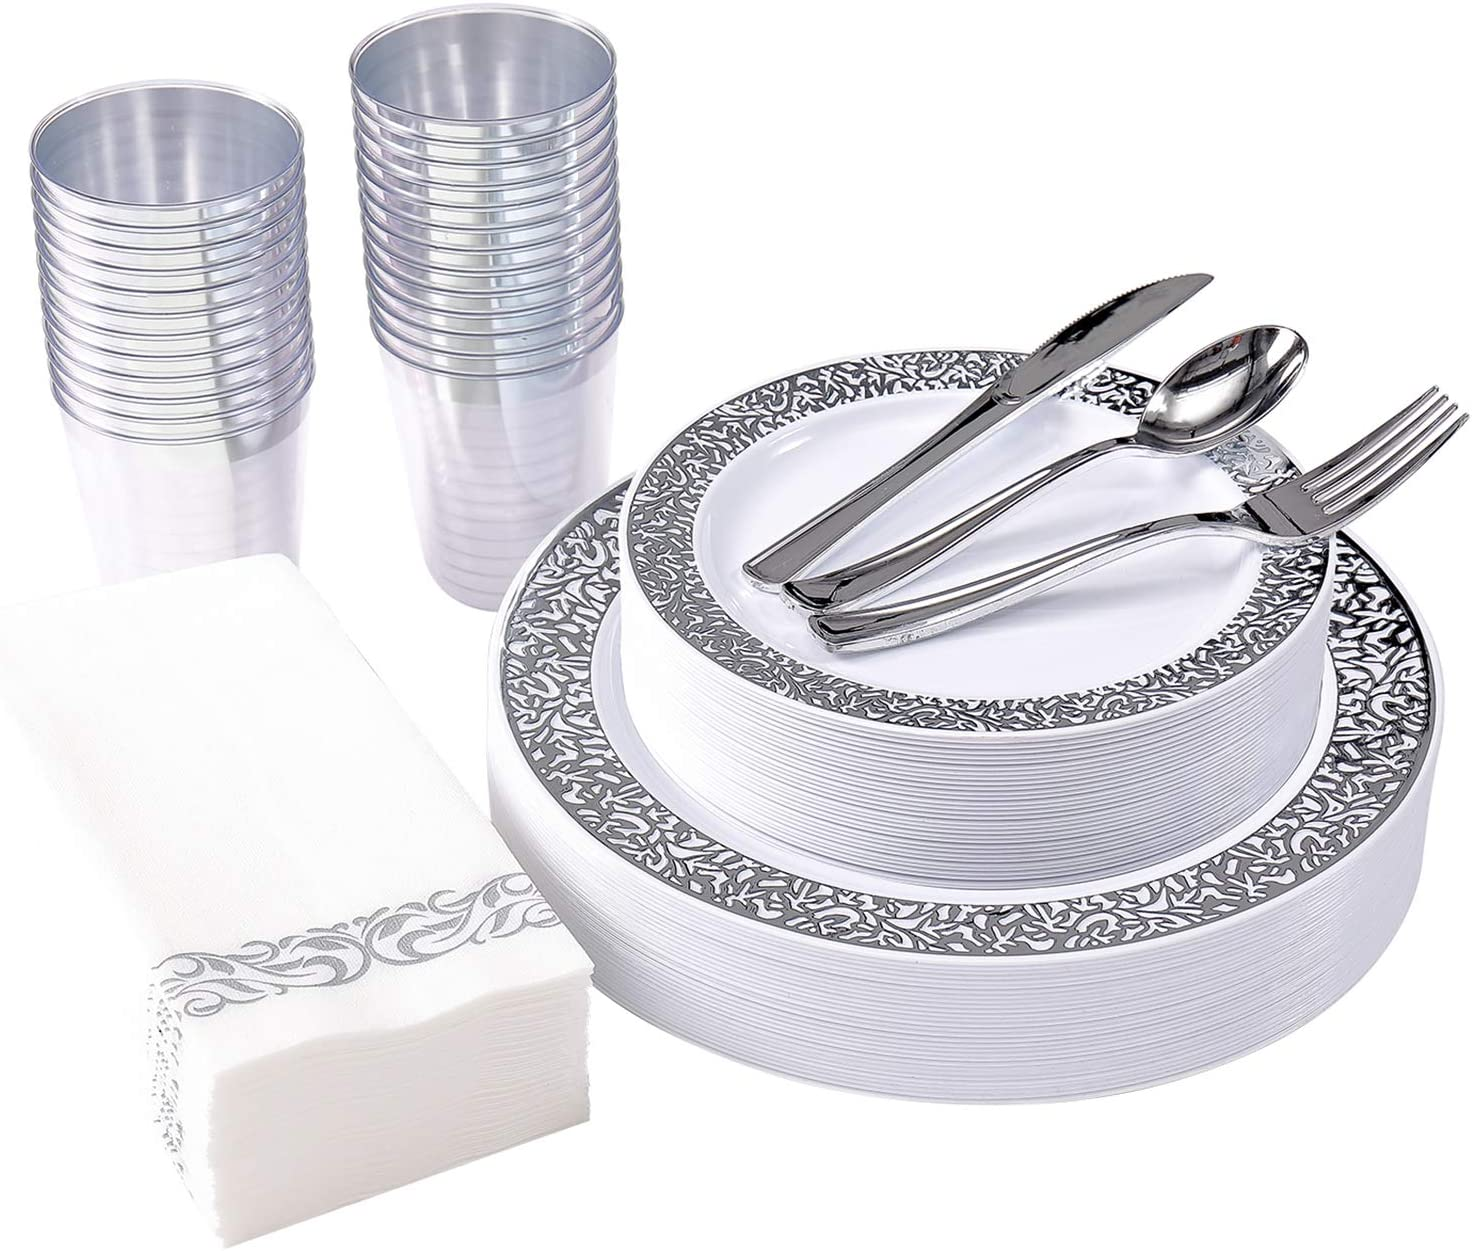 175 Piece Silver Dinnerware Set 25 Guest-50 Silver Lace Plastic Plates-25 Silver Plastic Silverware-25 Silver Plastic Cups-25 Linen Like Silver Paper Napkins, FOCUS LINE Disposable Dinnerware Set